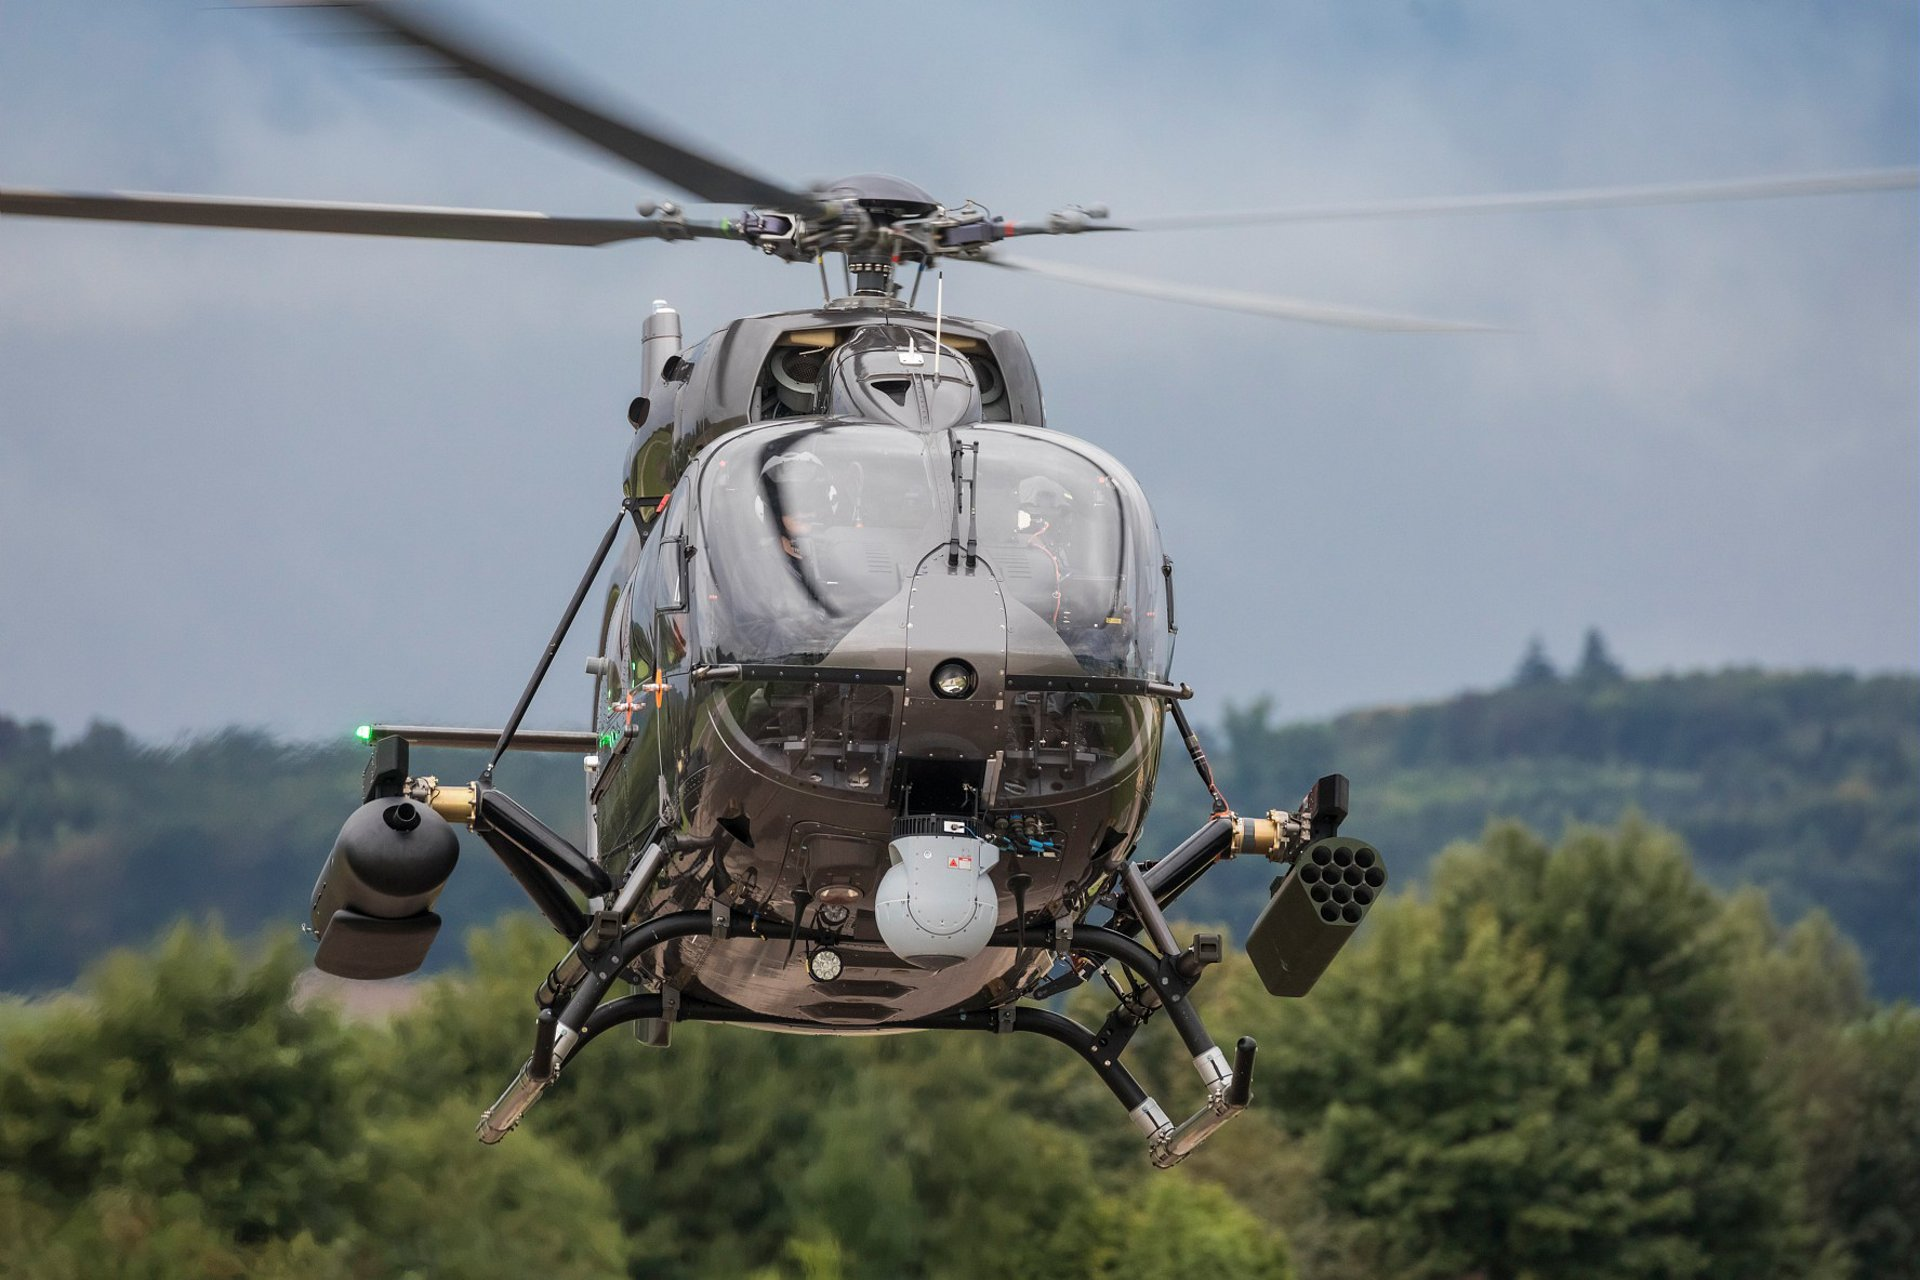 Airbus Australia Pacific Managing Director Andrew Mathewson today confirmed that Airbus has recently responded to the Commonwealth of Australia's request for information for a four-tonne class, rapidly deployable, multi-role helicopter for Australian Special Forces.